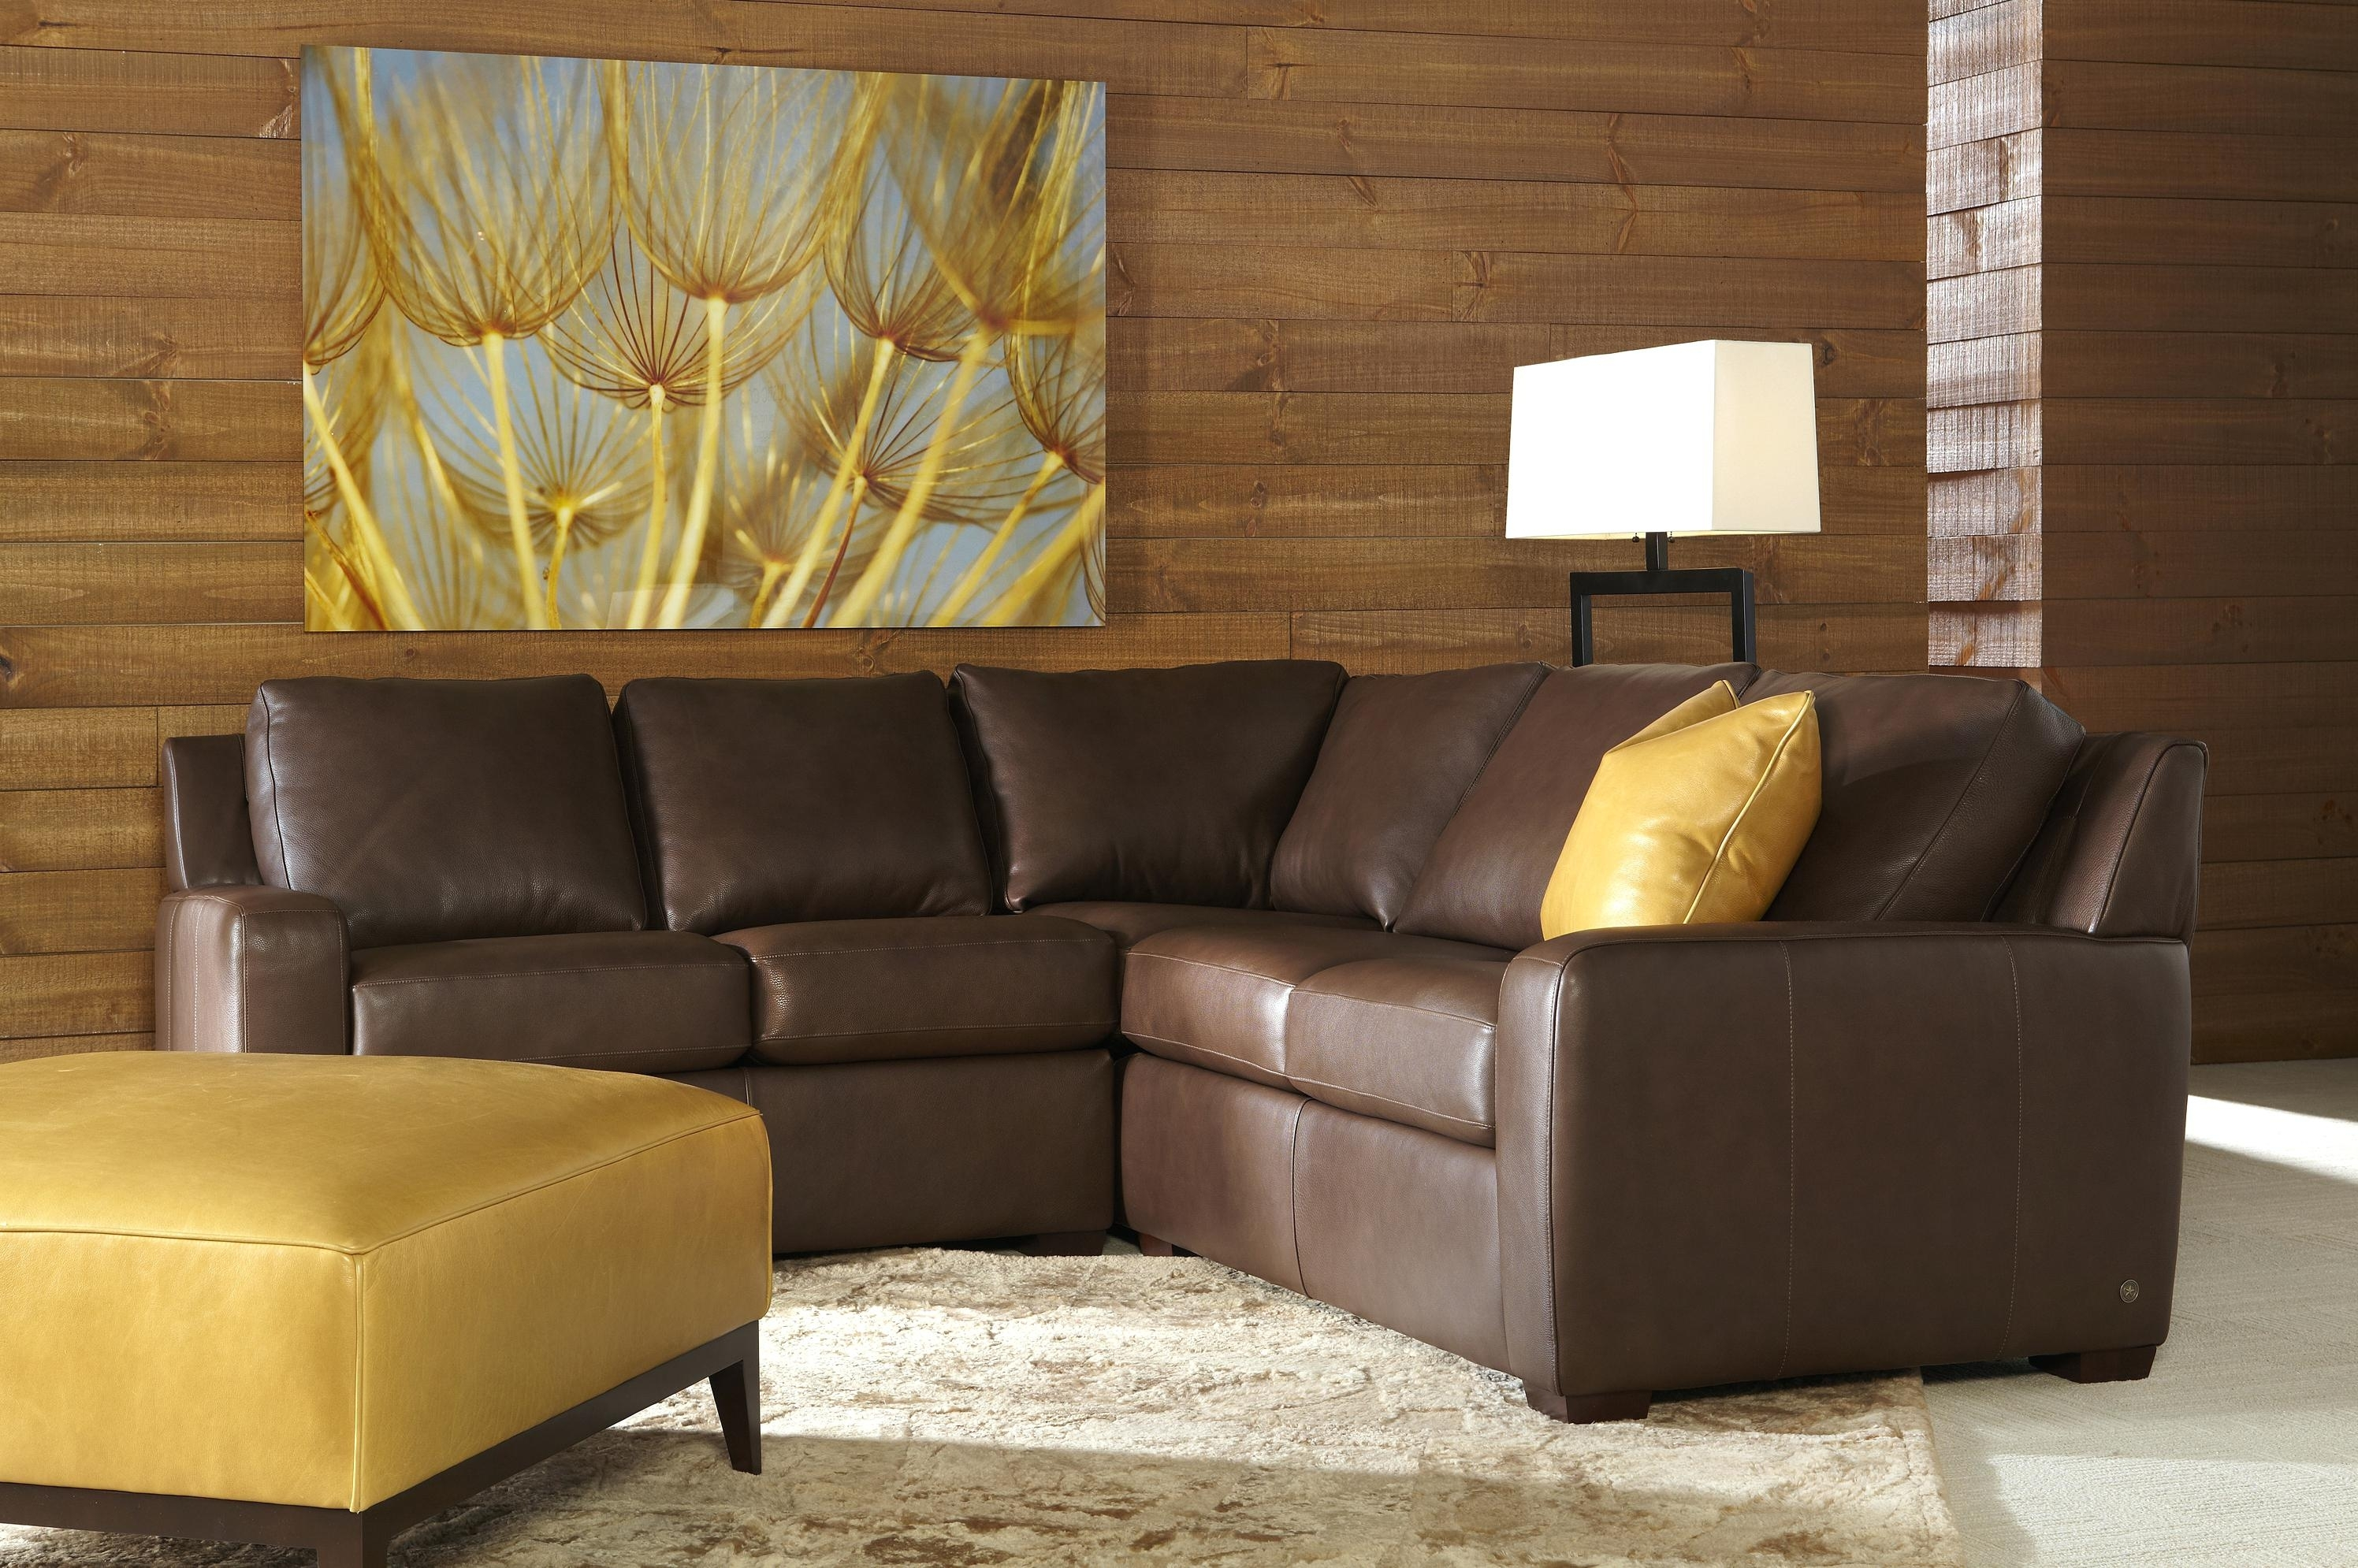 Jordans Furniture Couches Sectional Sofawolf And – 4Parkar for Jordans Sectional Sofas (Image 4 of 10)